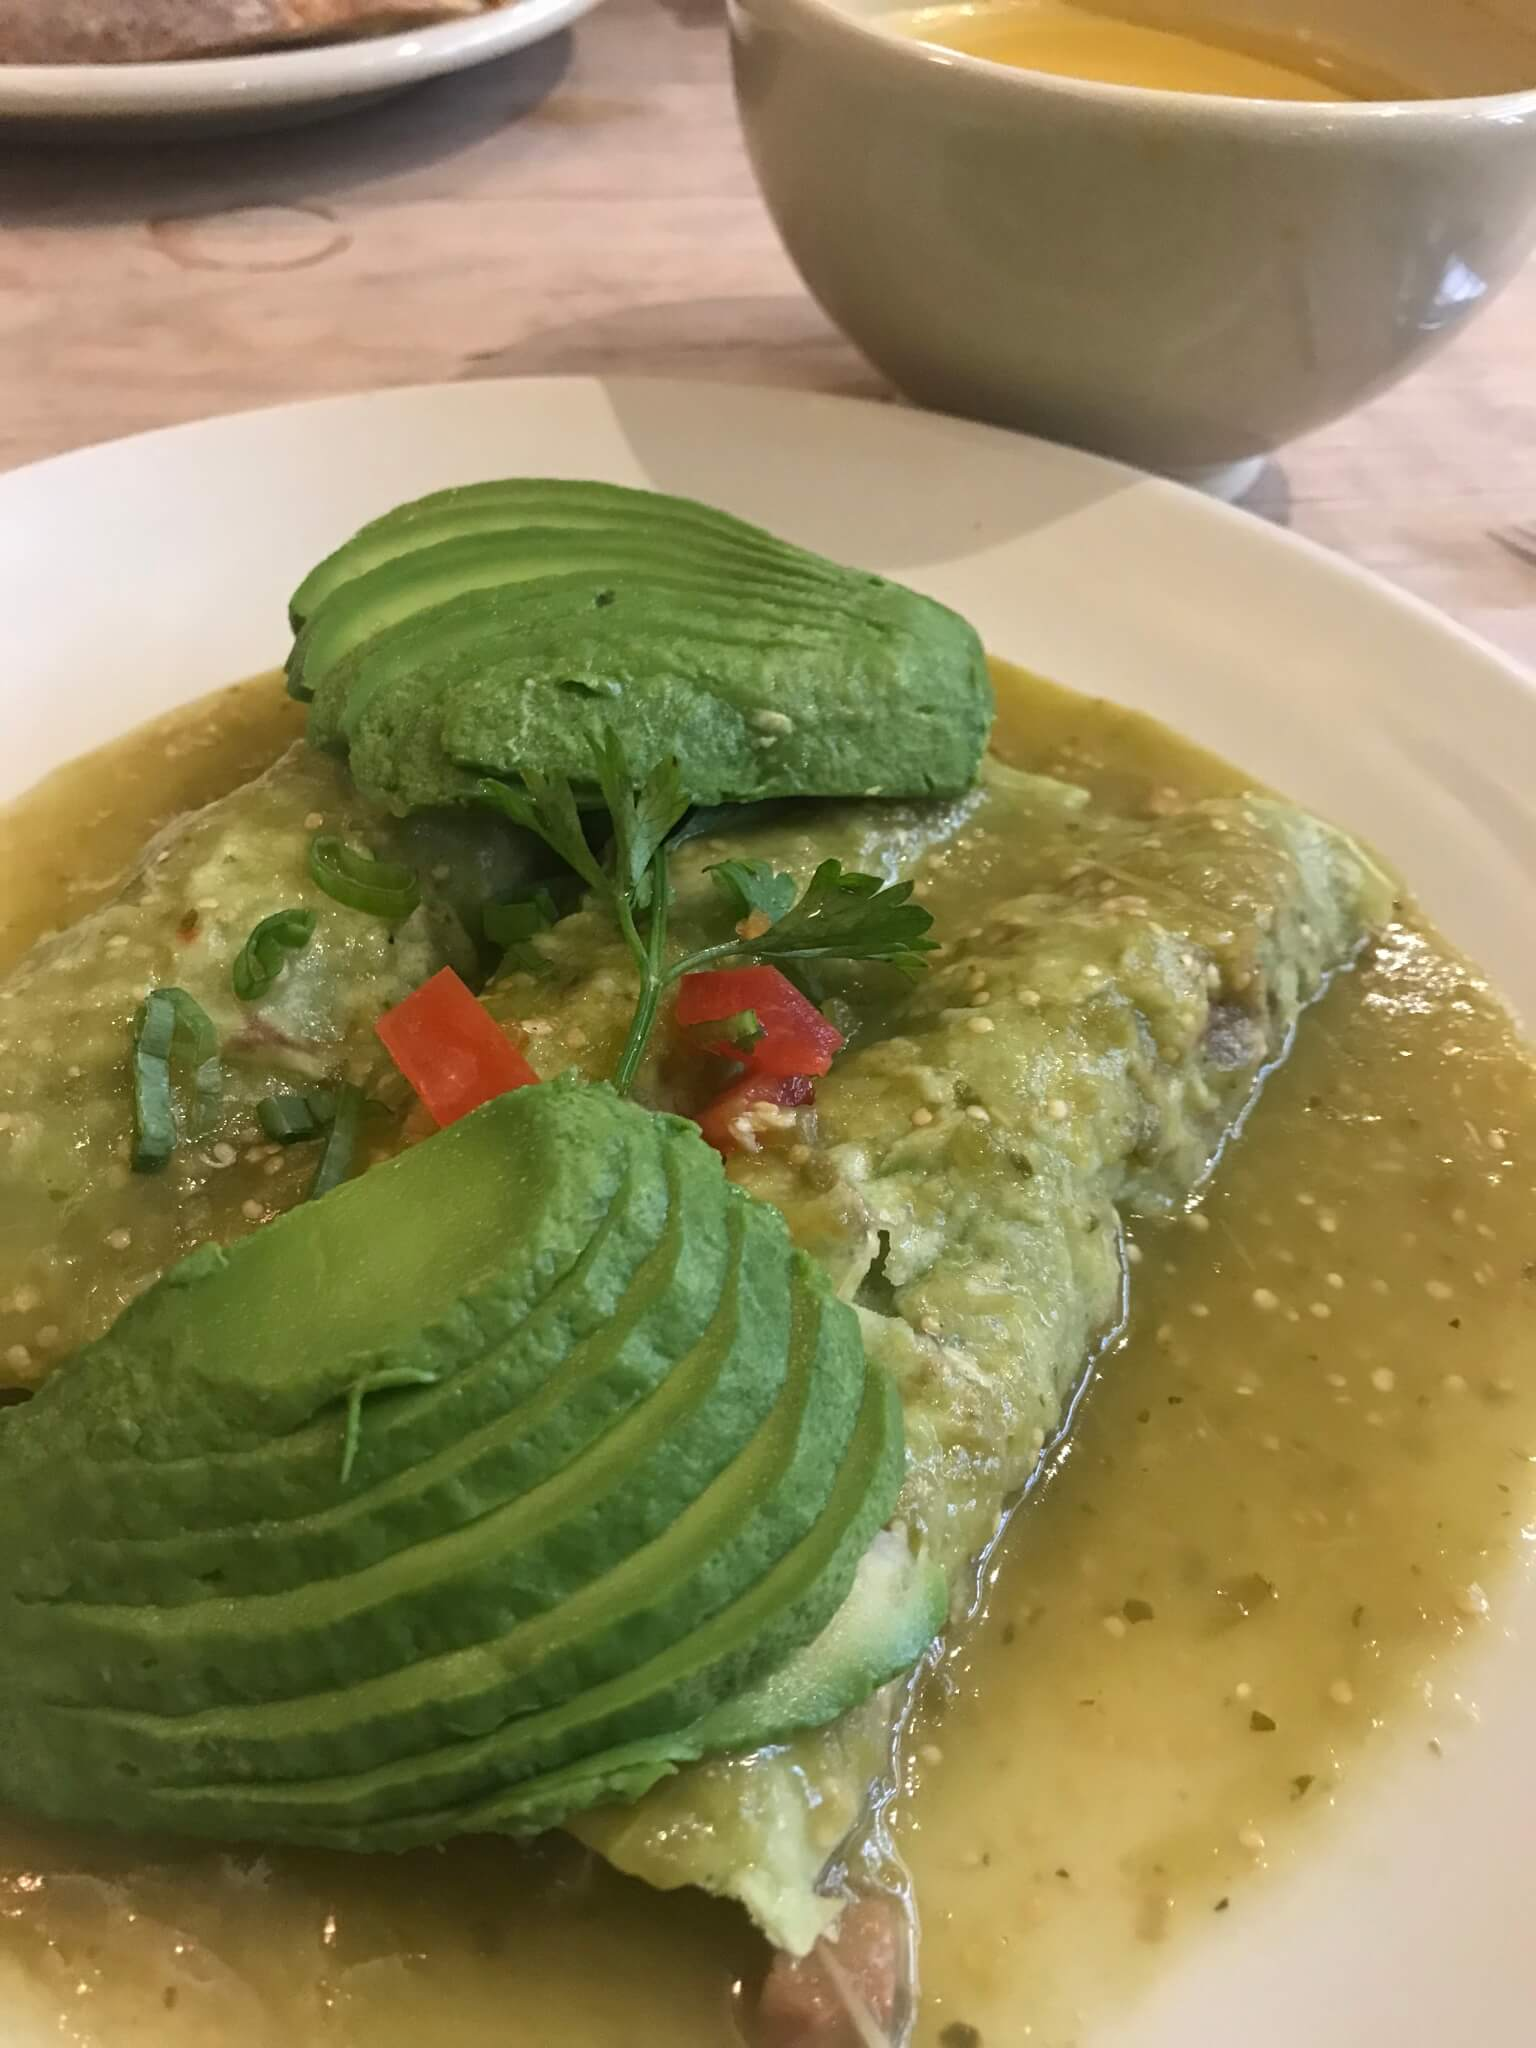 Le Pain Quotidien Mexico | Vegan Restaurants in Mexico City